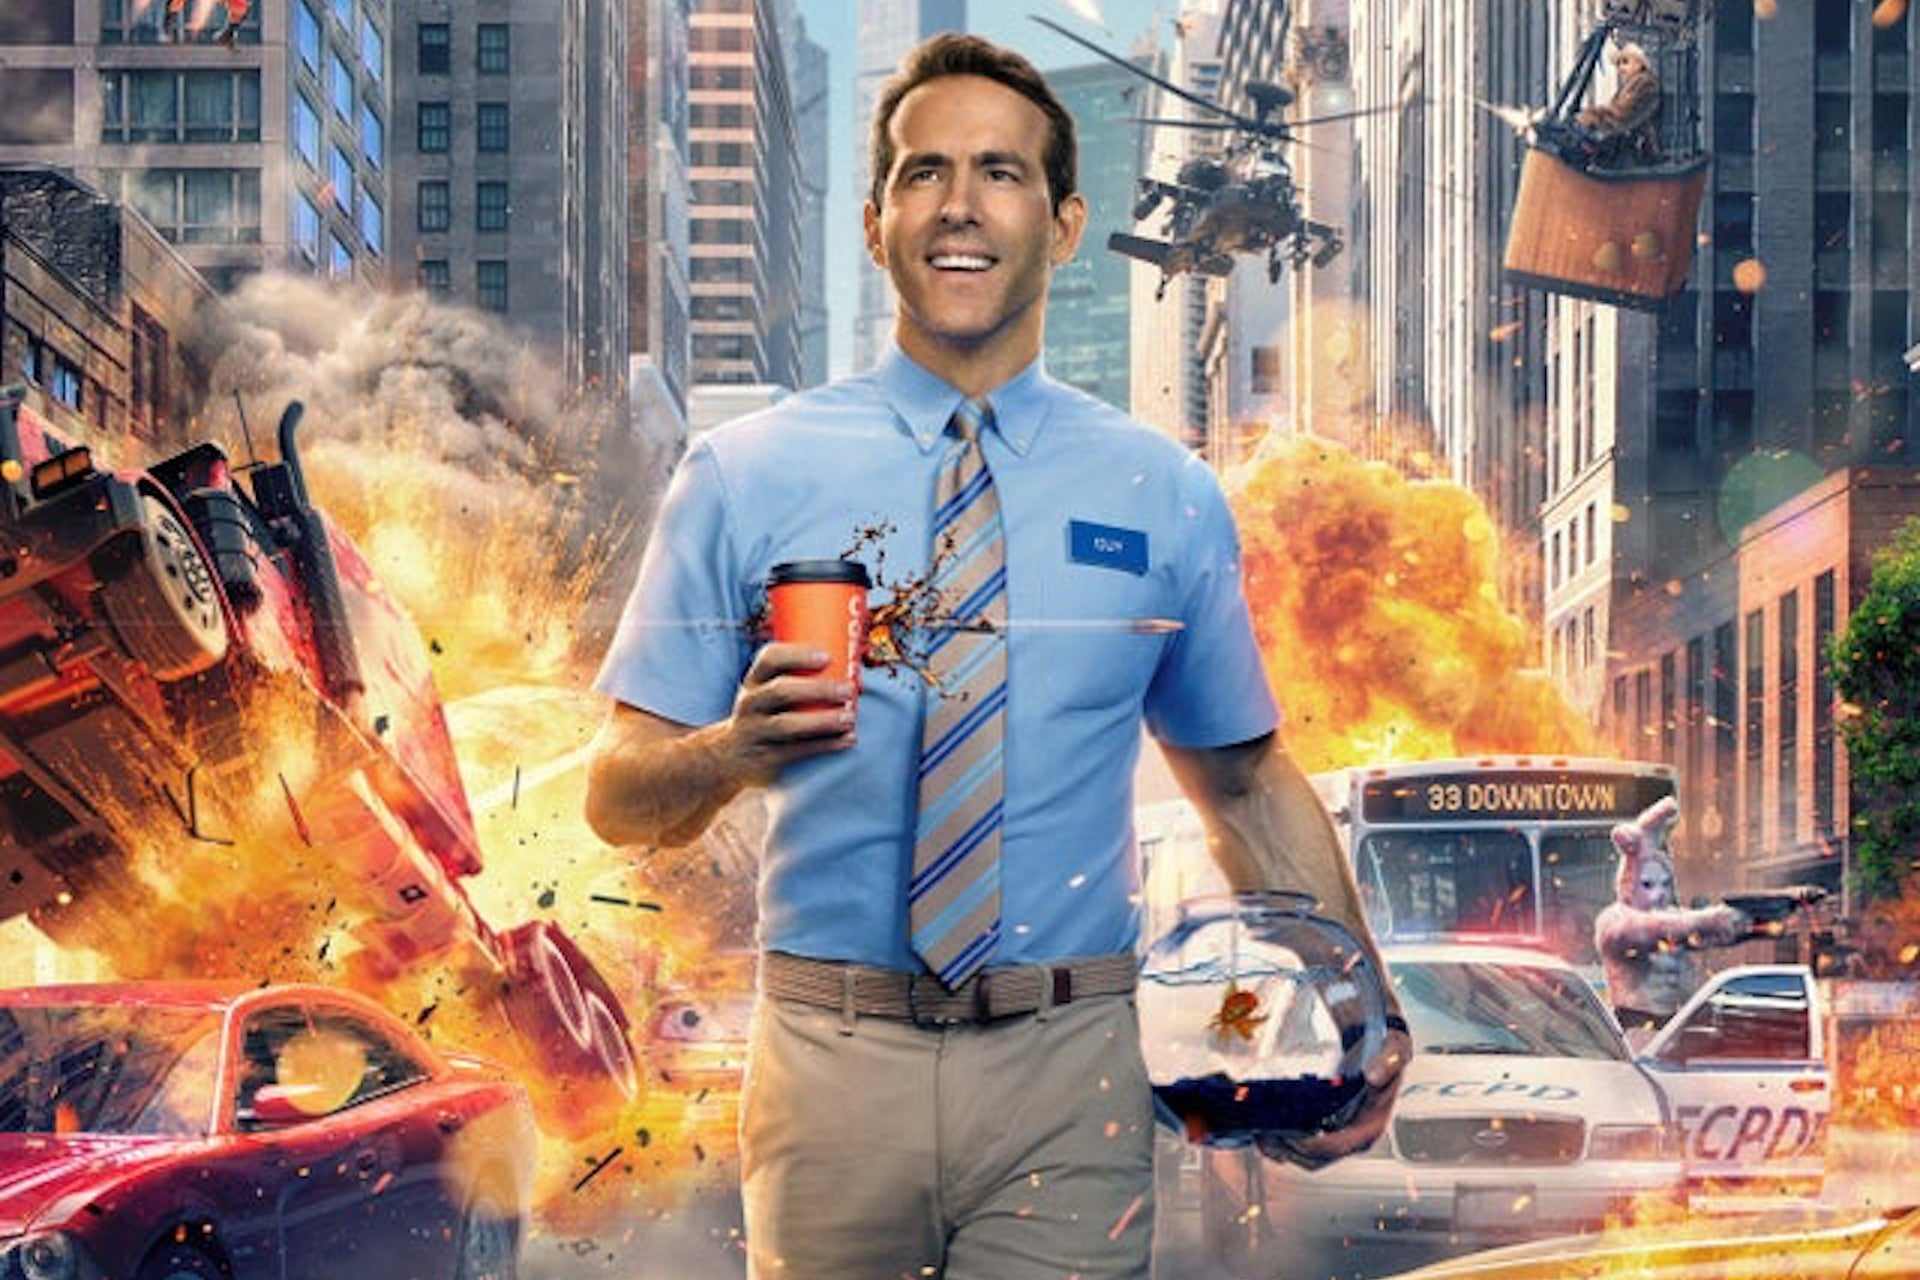 Watch Ryan Reynolds go for the dub in the 'Free Guy' trailer